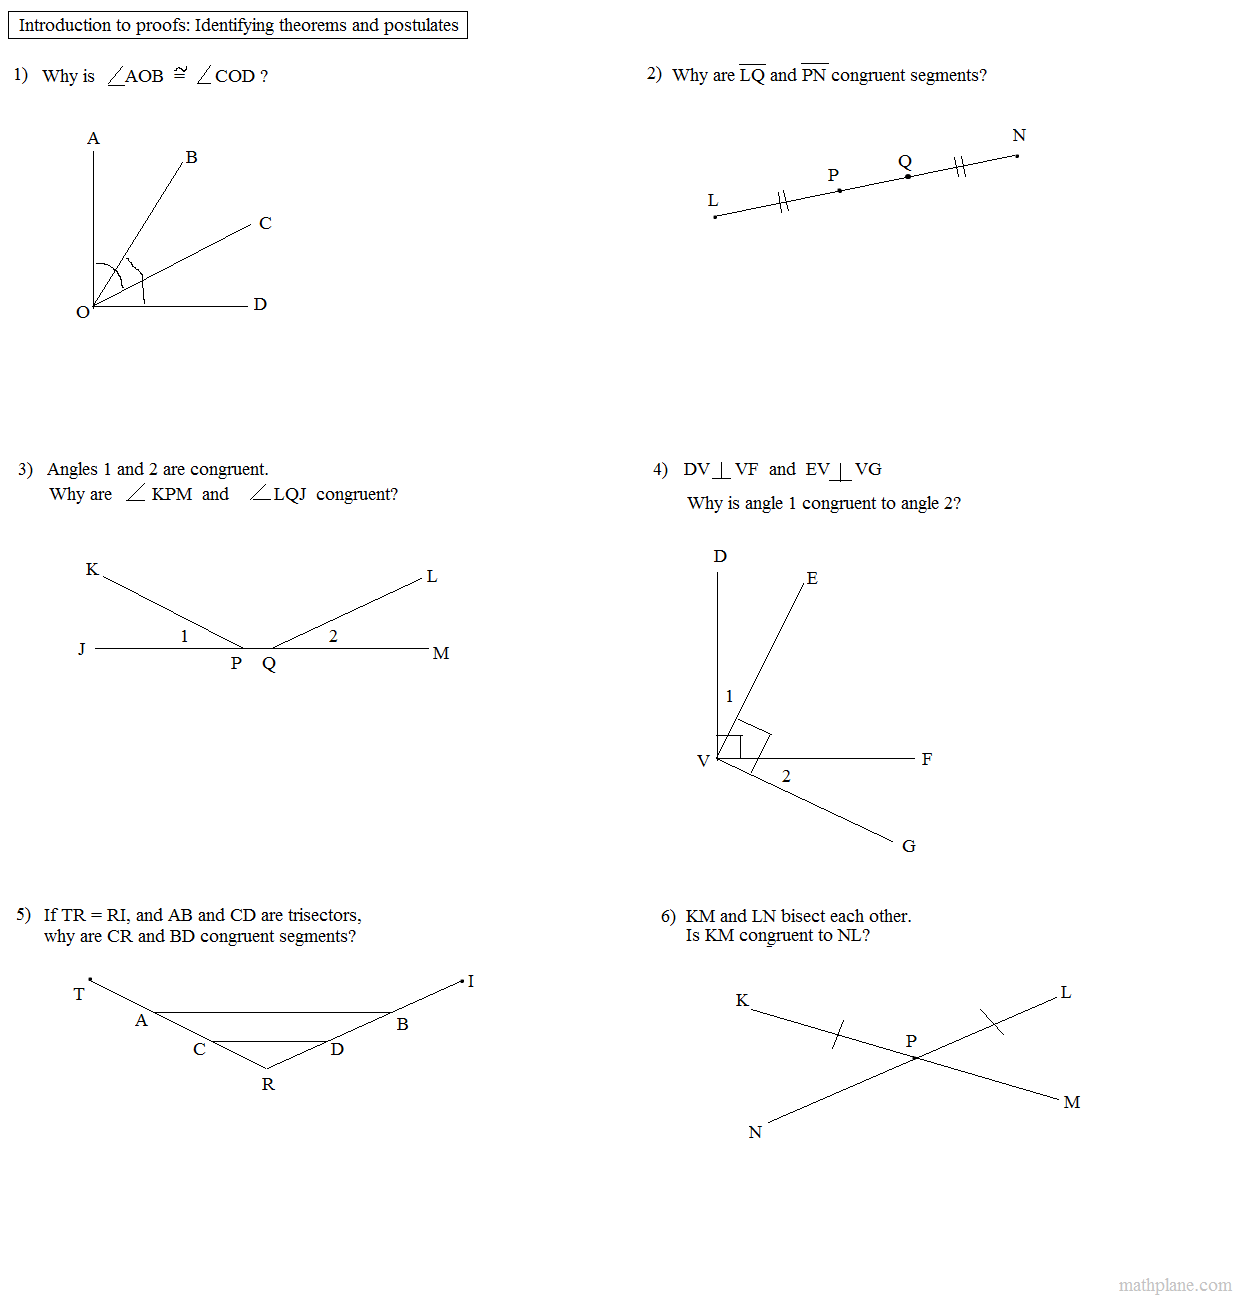 Printables Geometry Proofs Worksheets math plane proofs postulates 1 worksheet geometry and reasoning exercises